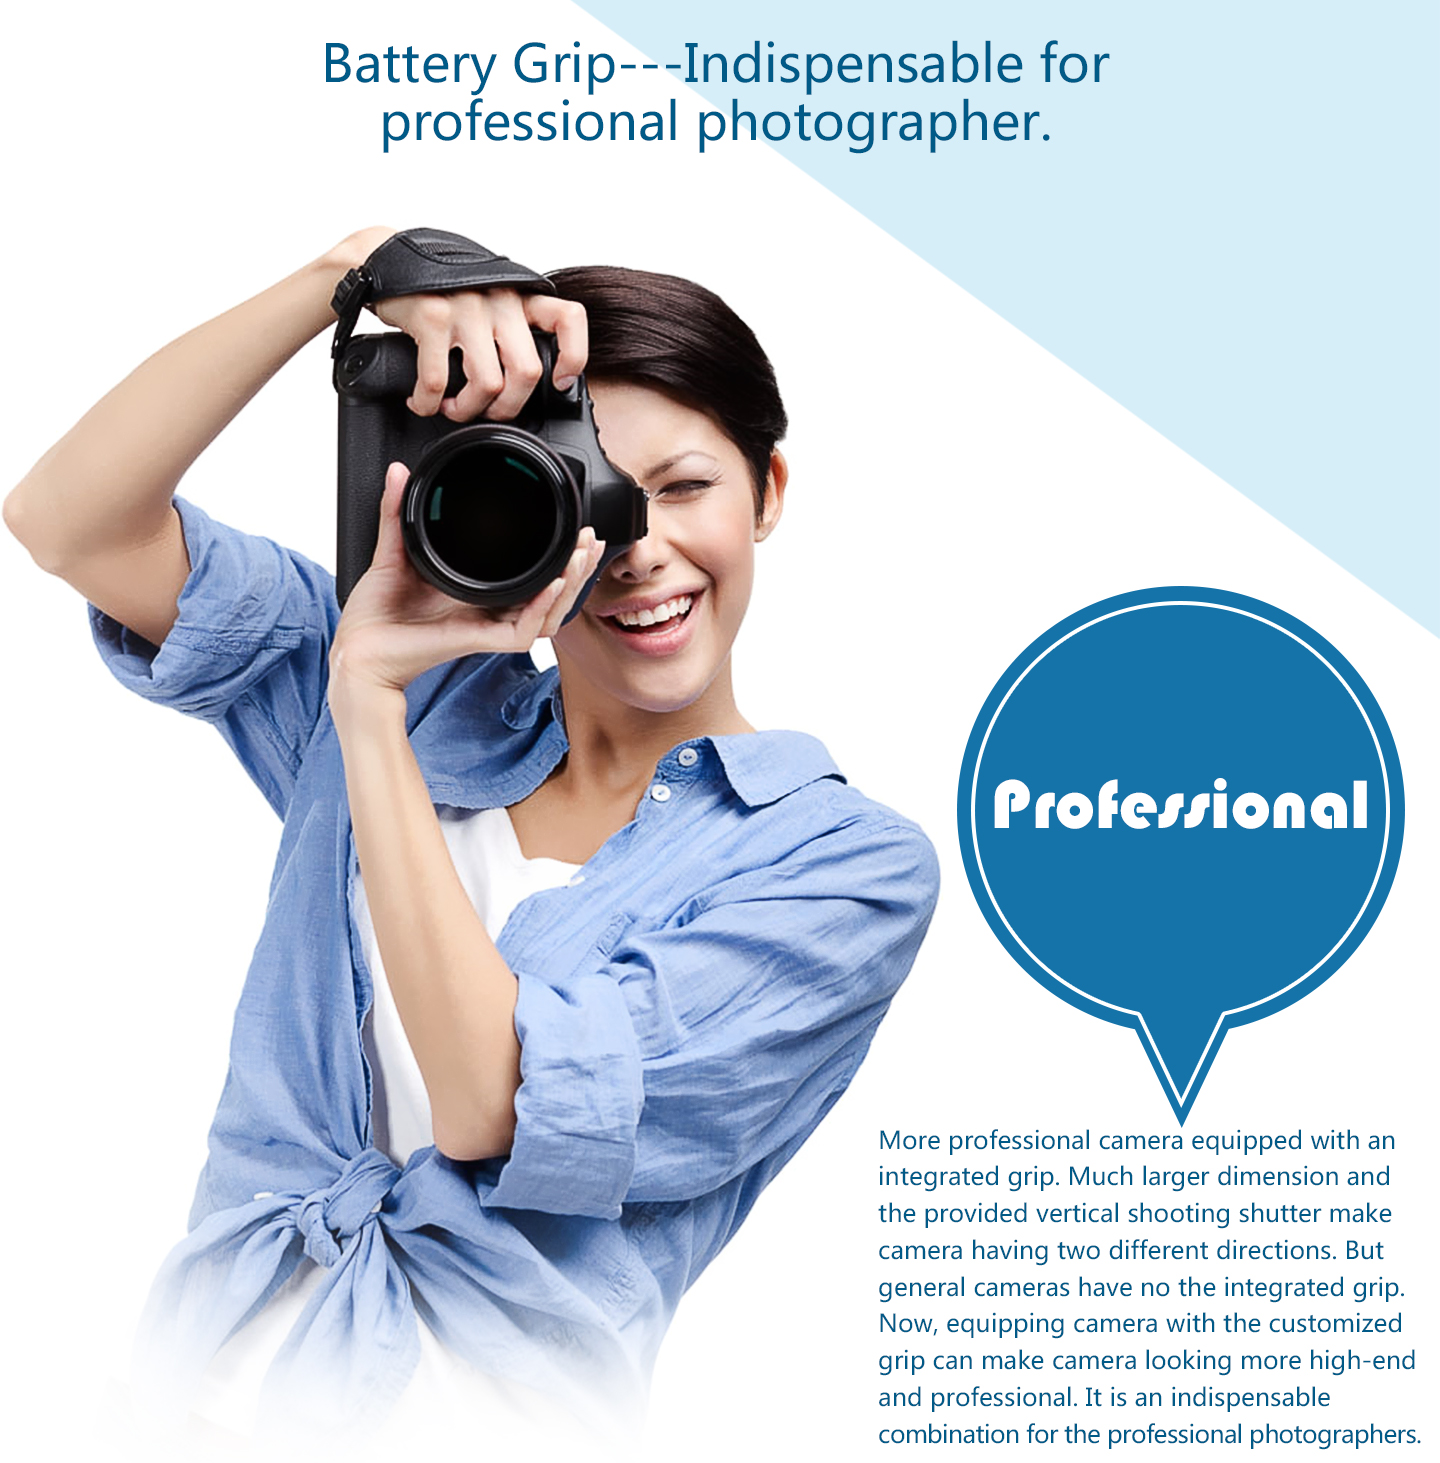 Battery Grip---Indispensable for professional photographer